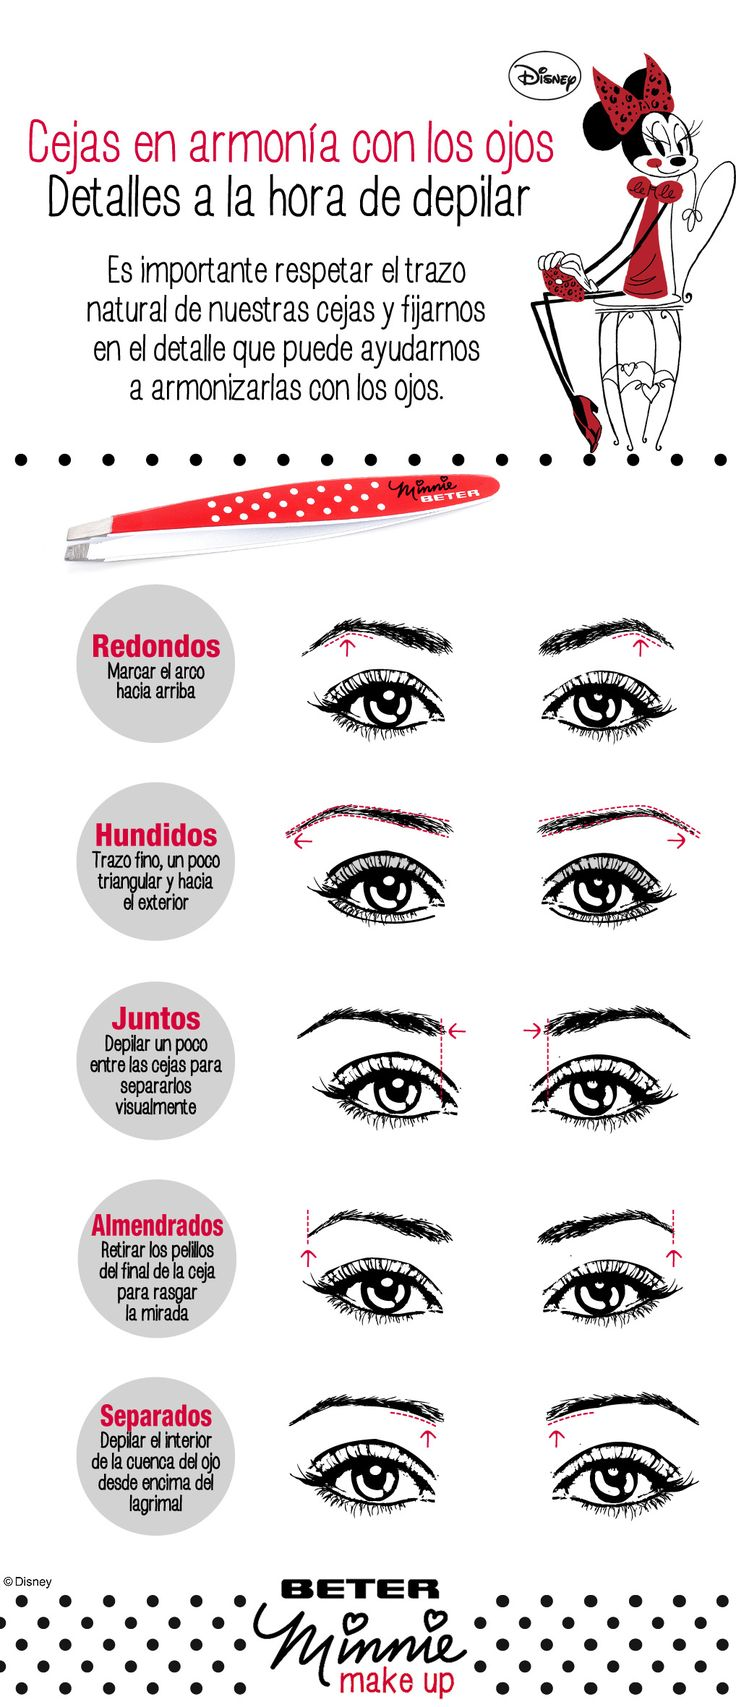 Trucos para la depilación de Cejas. Beauty Eyebrows